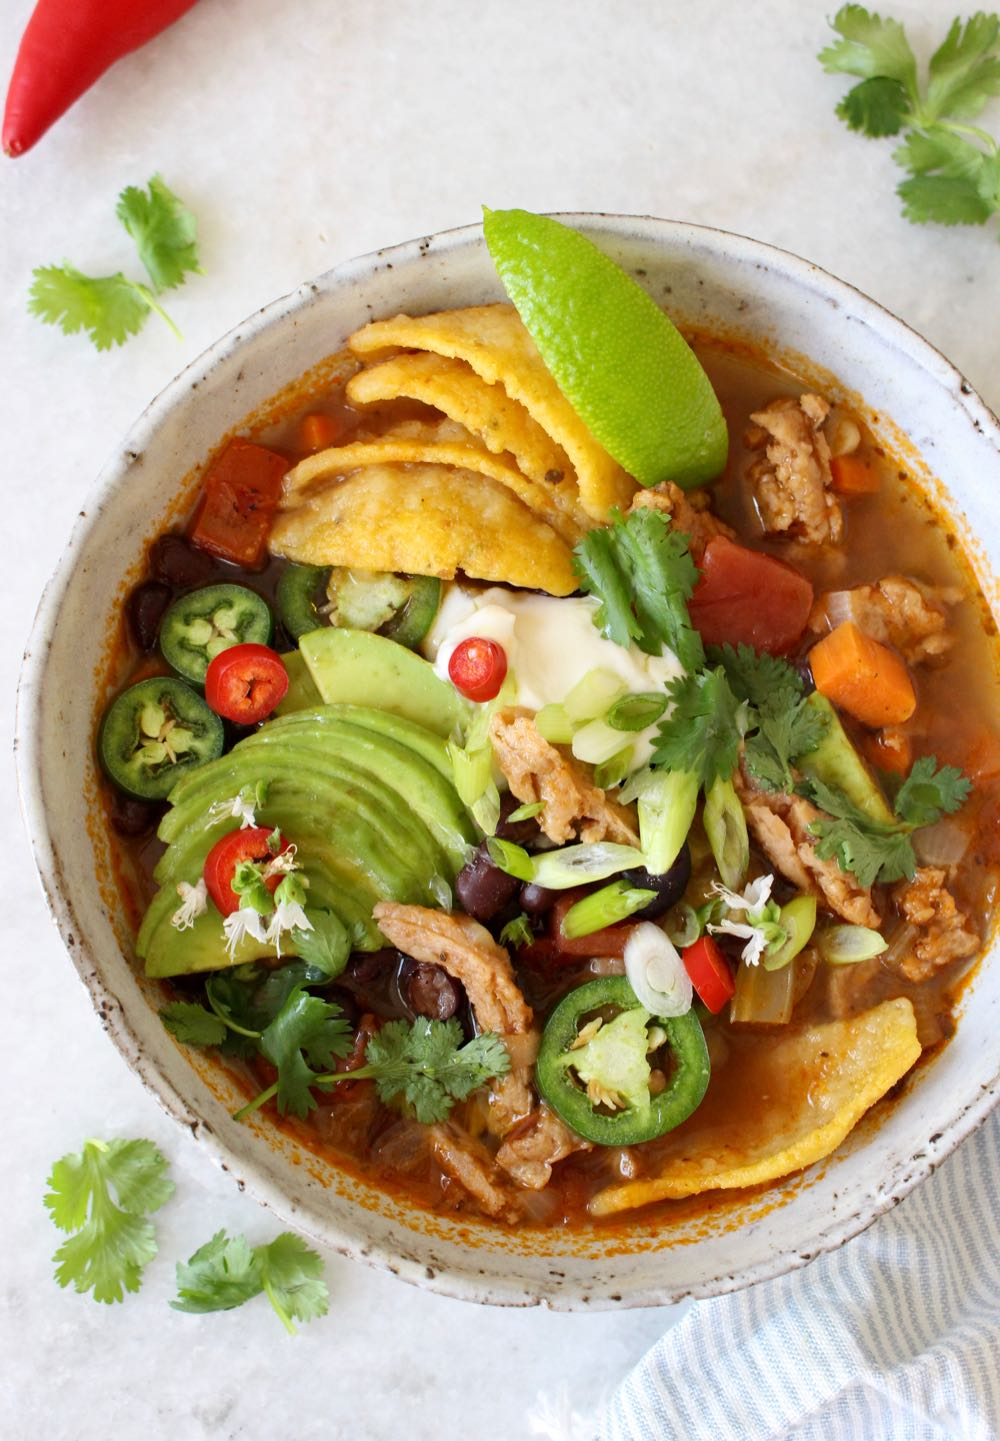 Vegan Tortilla Soup Recipe with Soy Curls